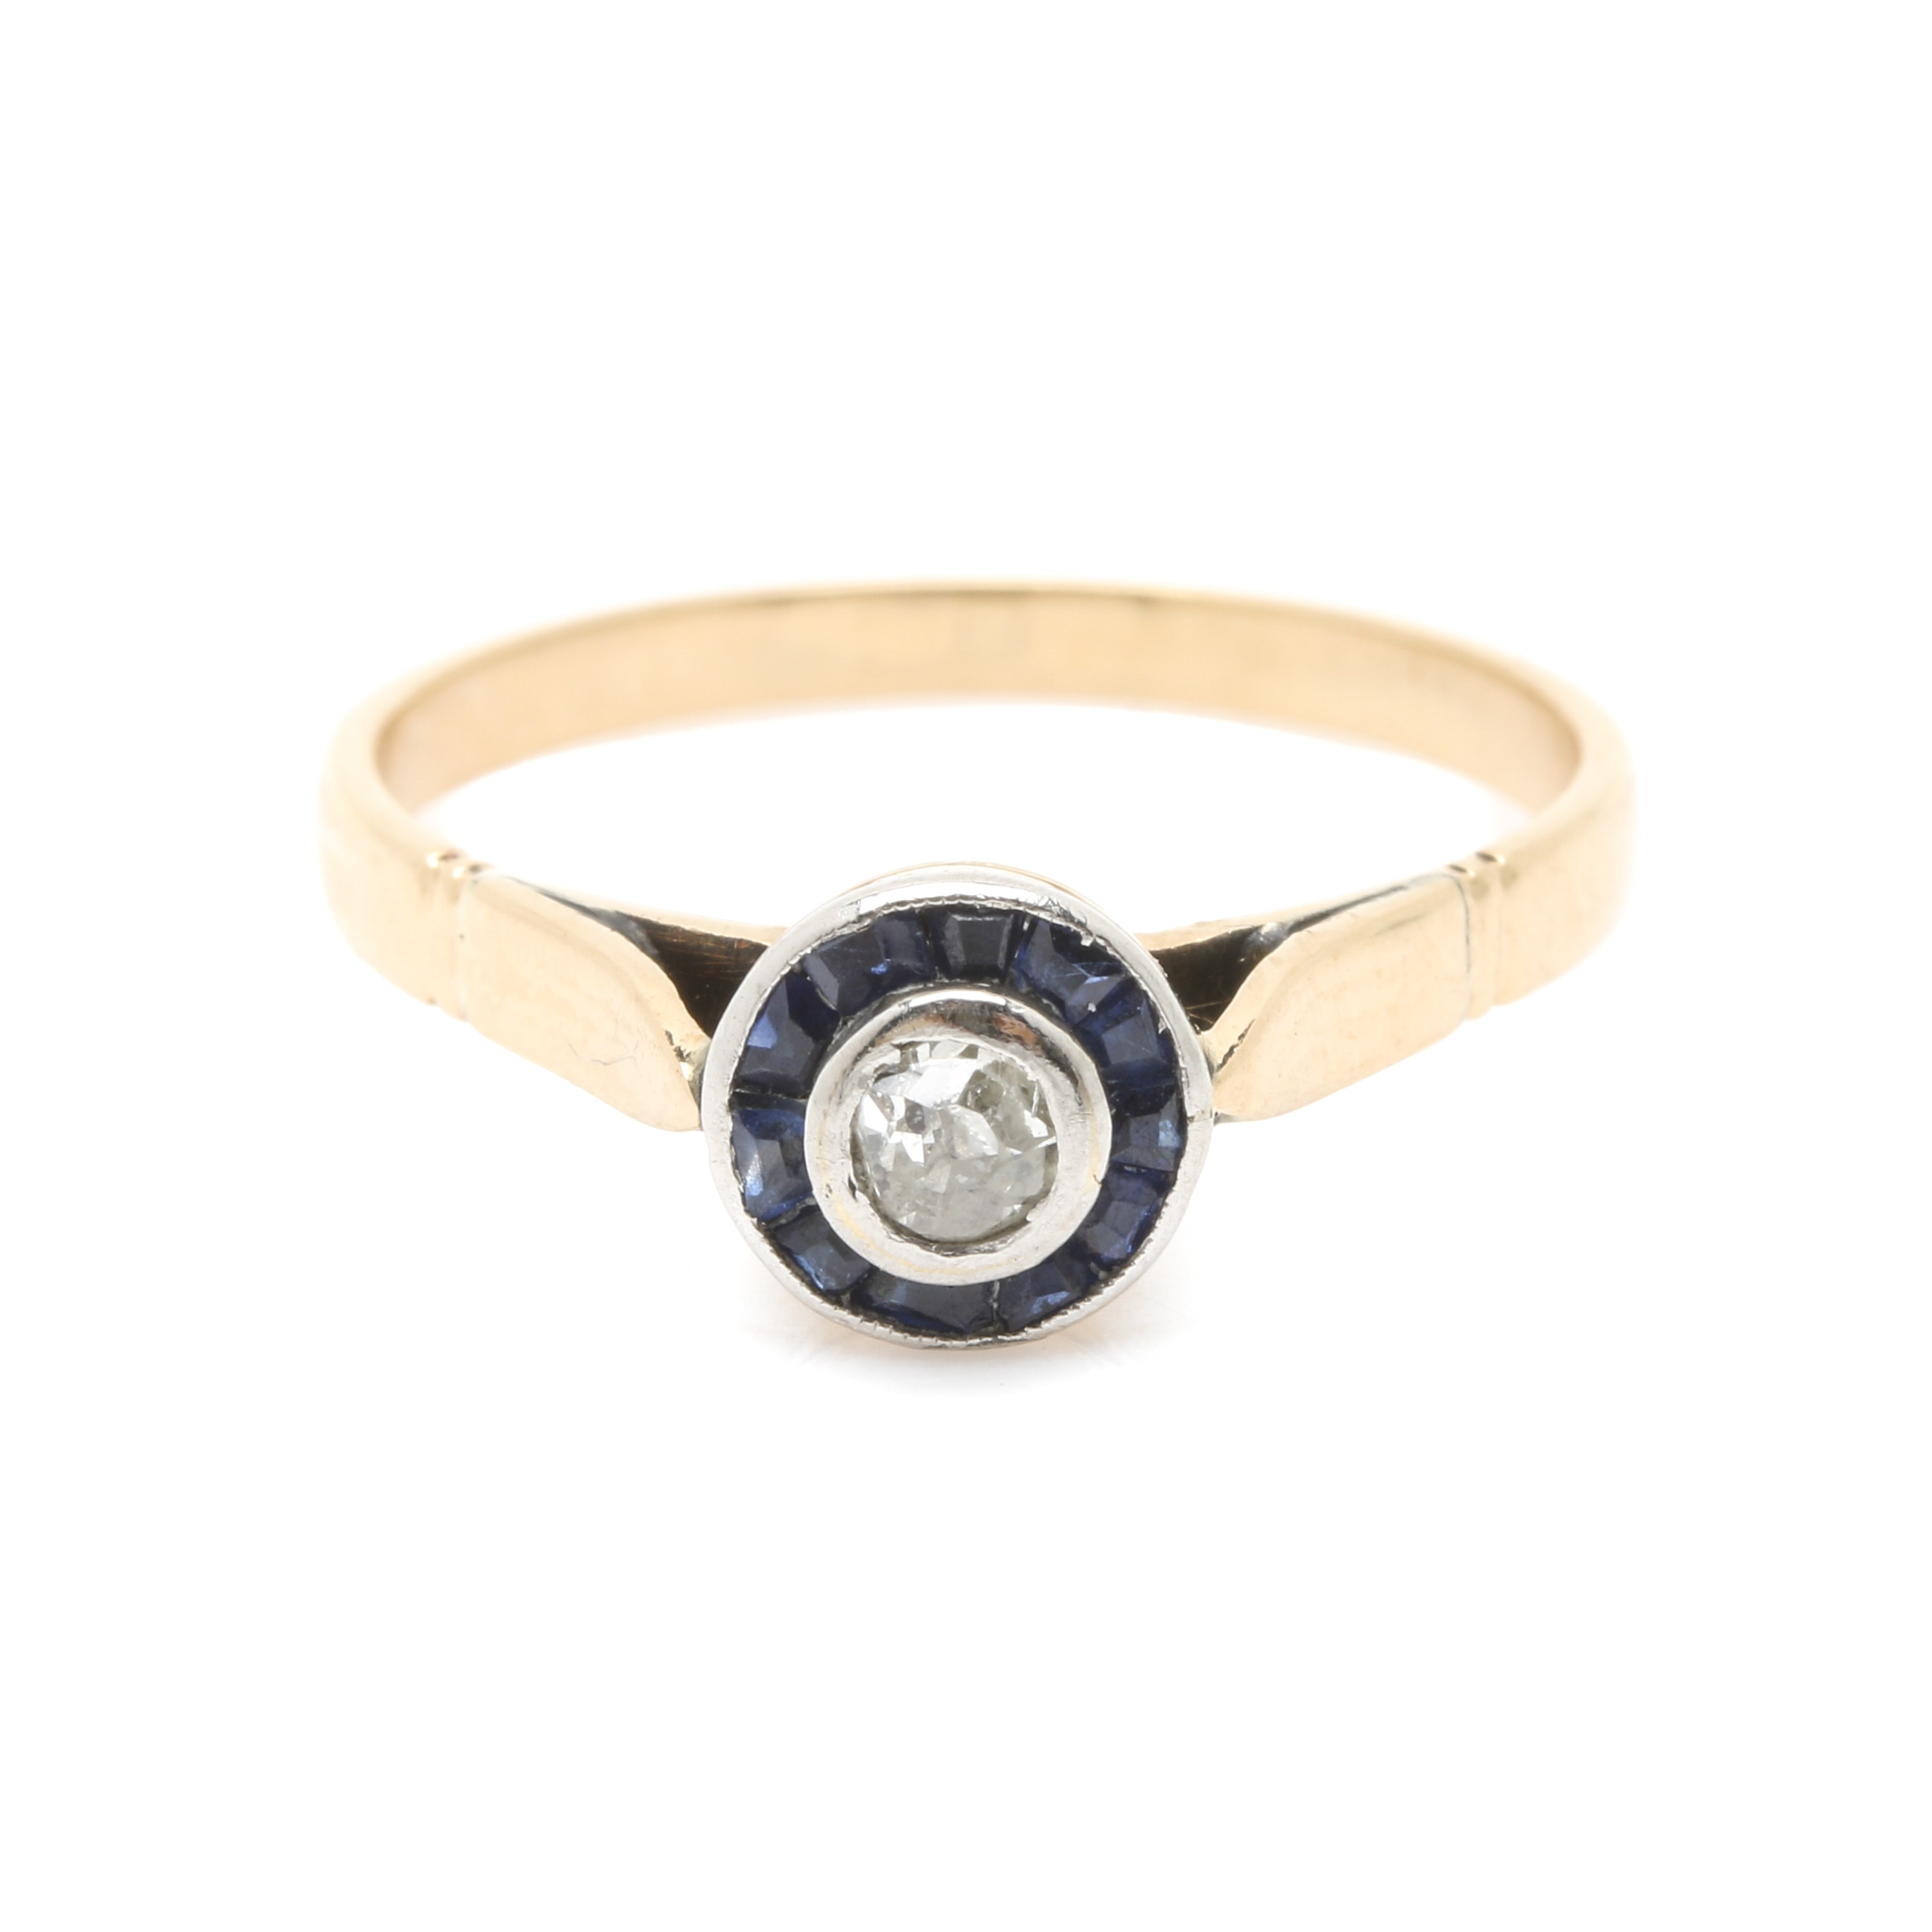 14K Yellow Gold Diamond and Sapphire Ring with Platinum Accents